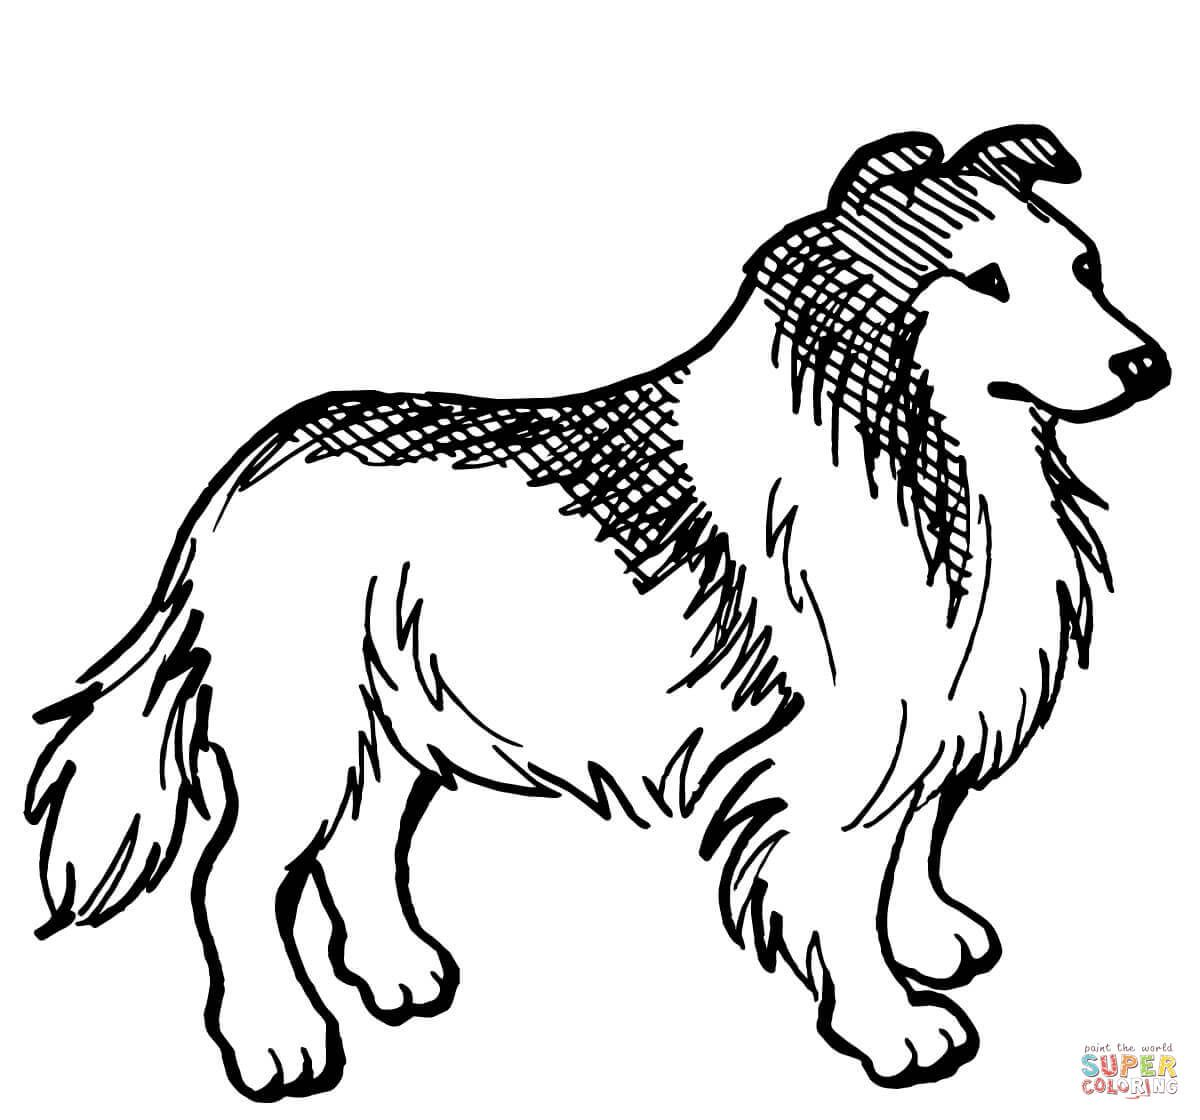 Rough Collie Dog Super Coloring Dog Coloring Book Dog Coloring Page Puppy Coloring Pages